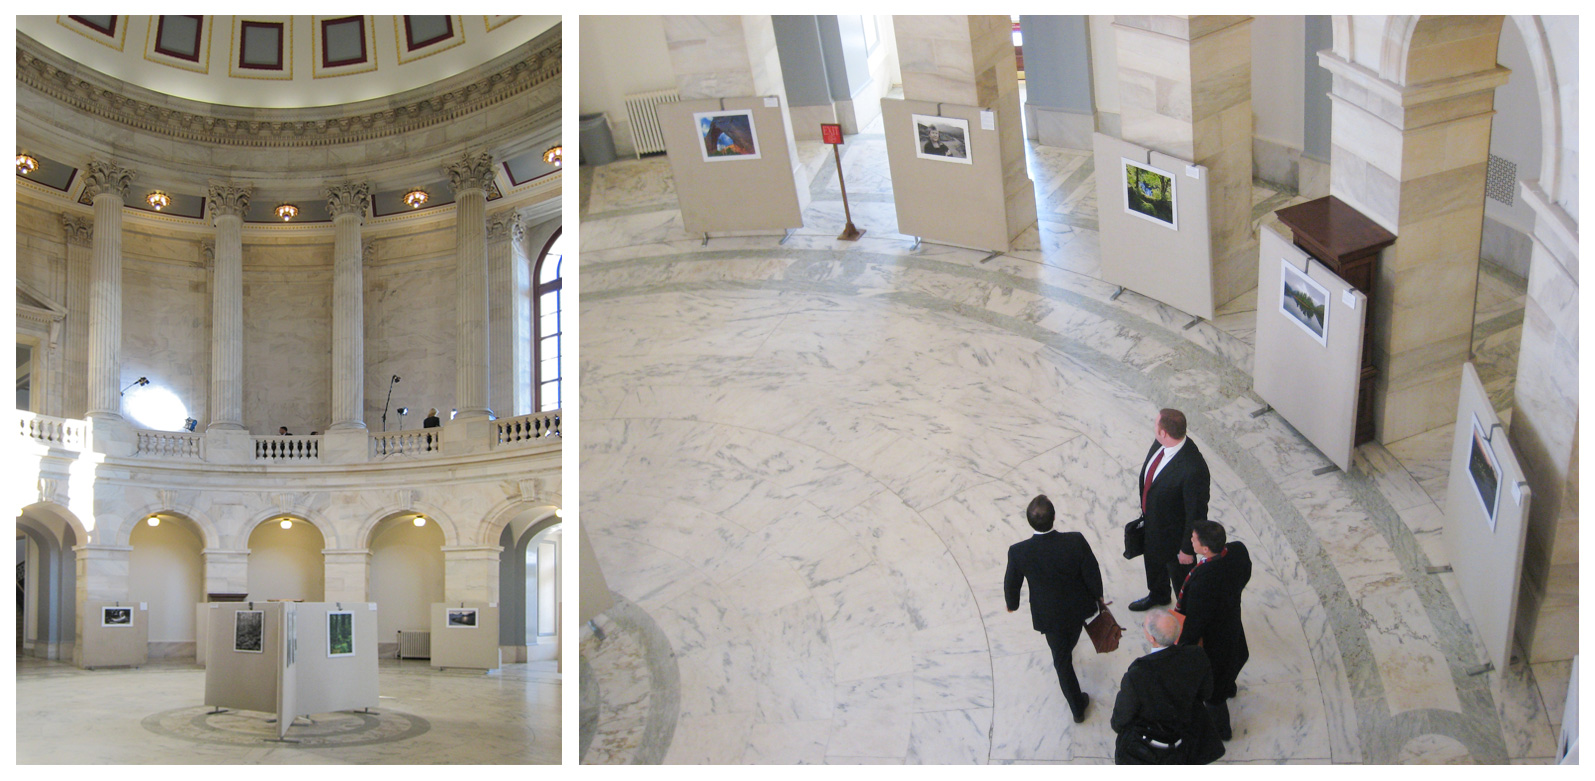 Roadless Photography Exhibit in the US Senate Building